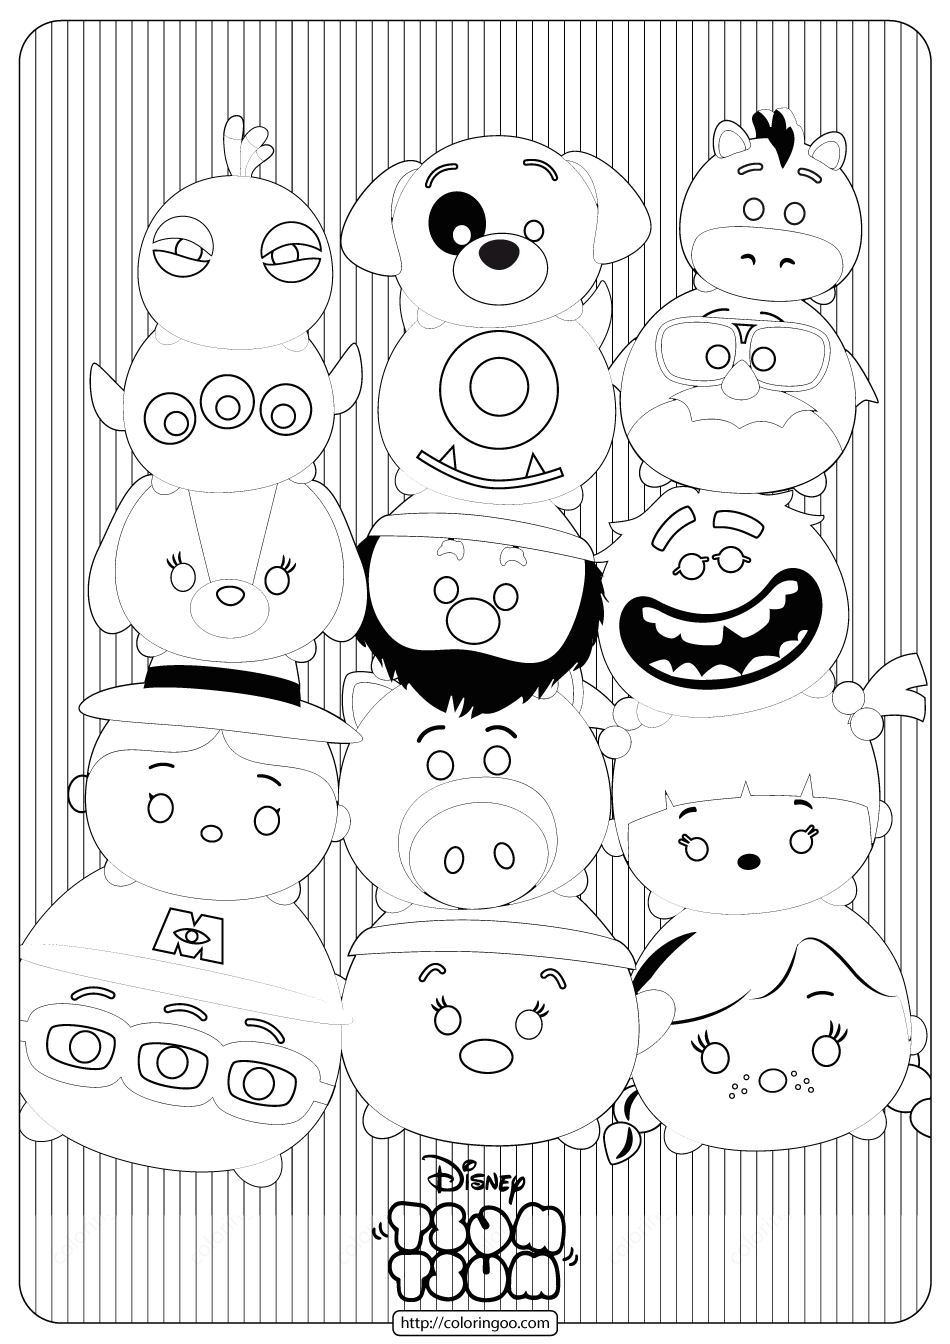 Disney Tsum Tsum Stack Coloring Pages